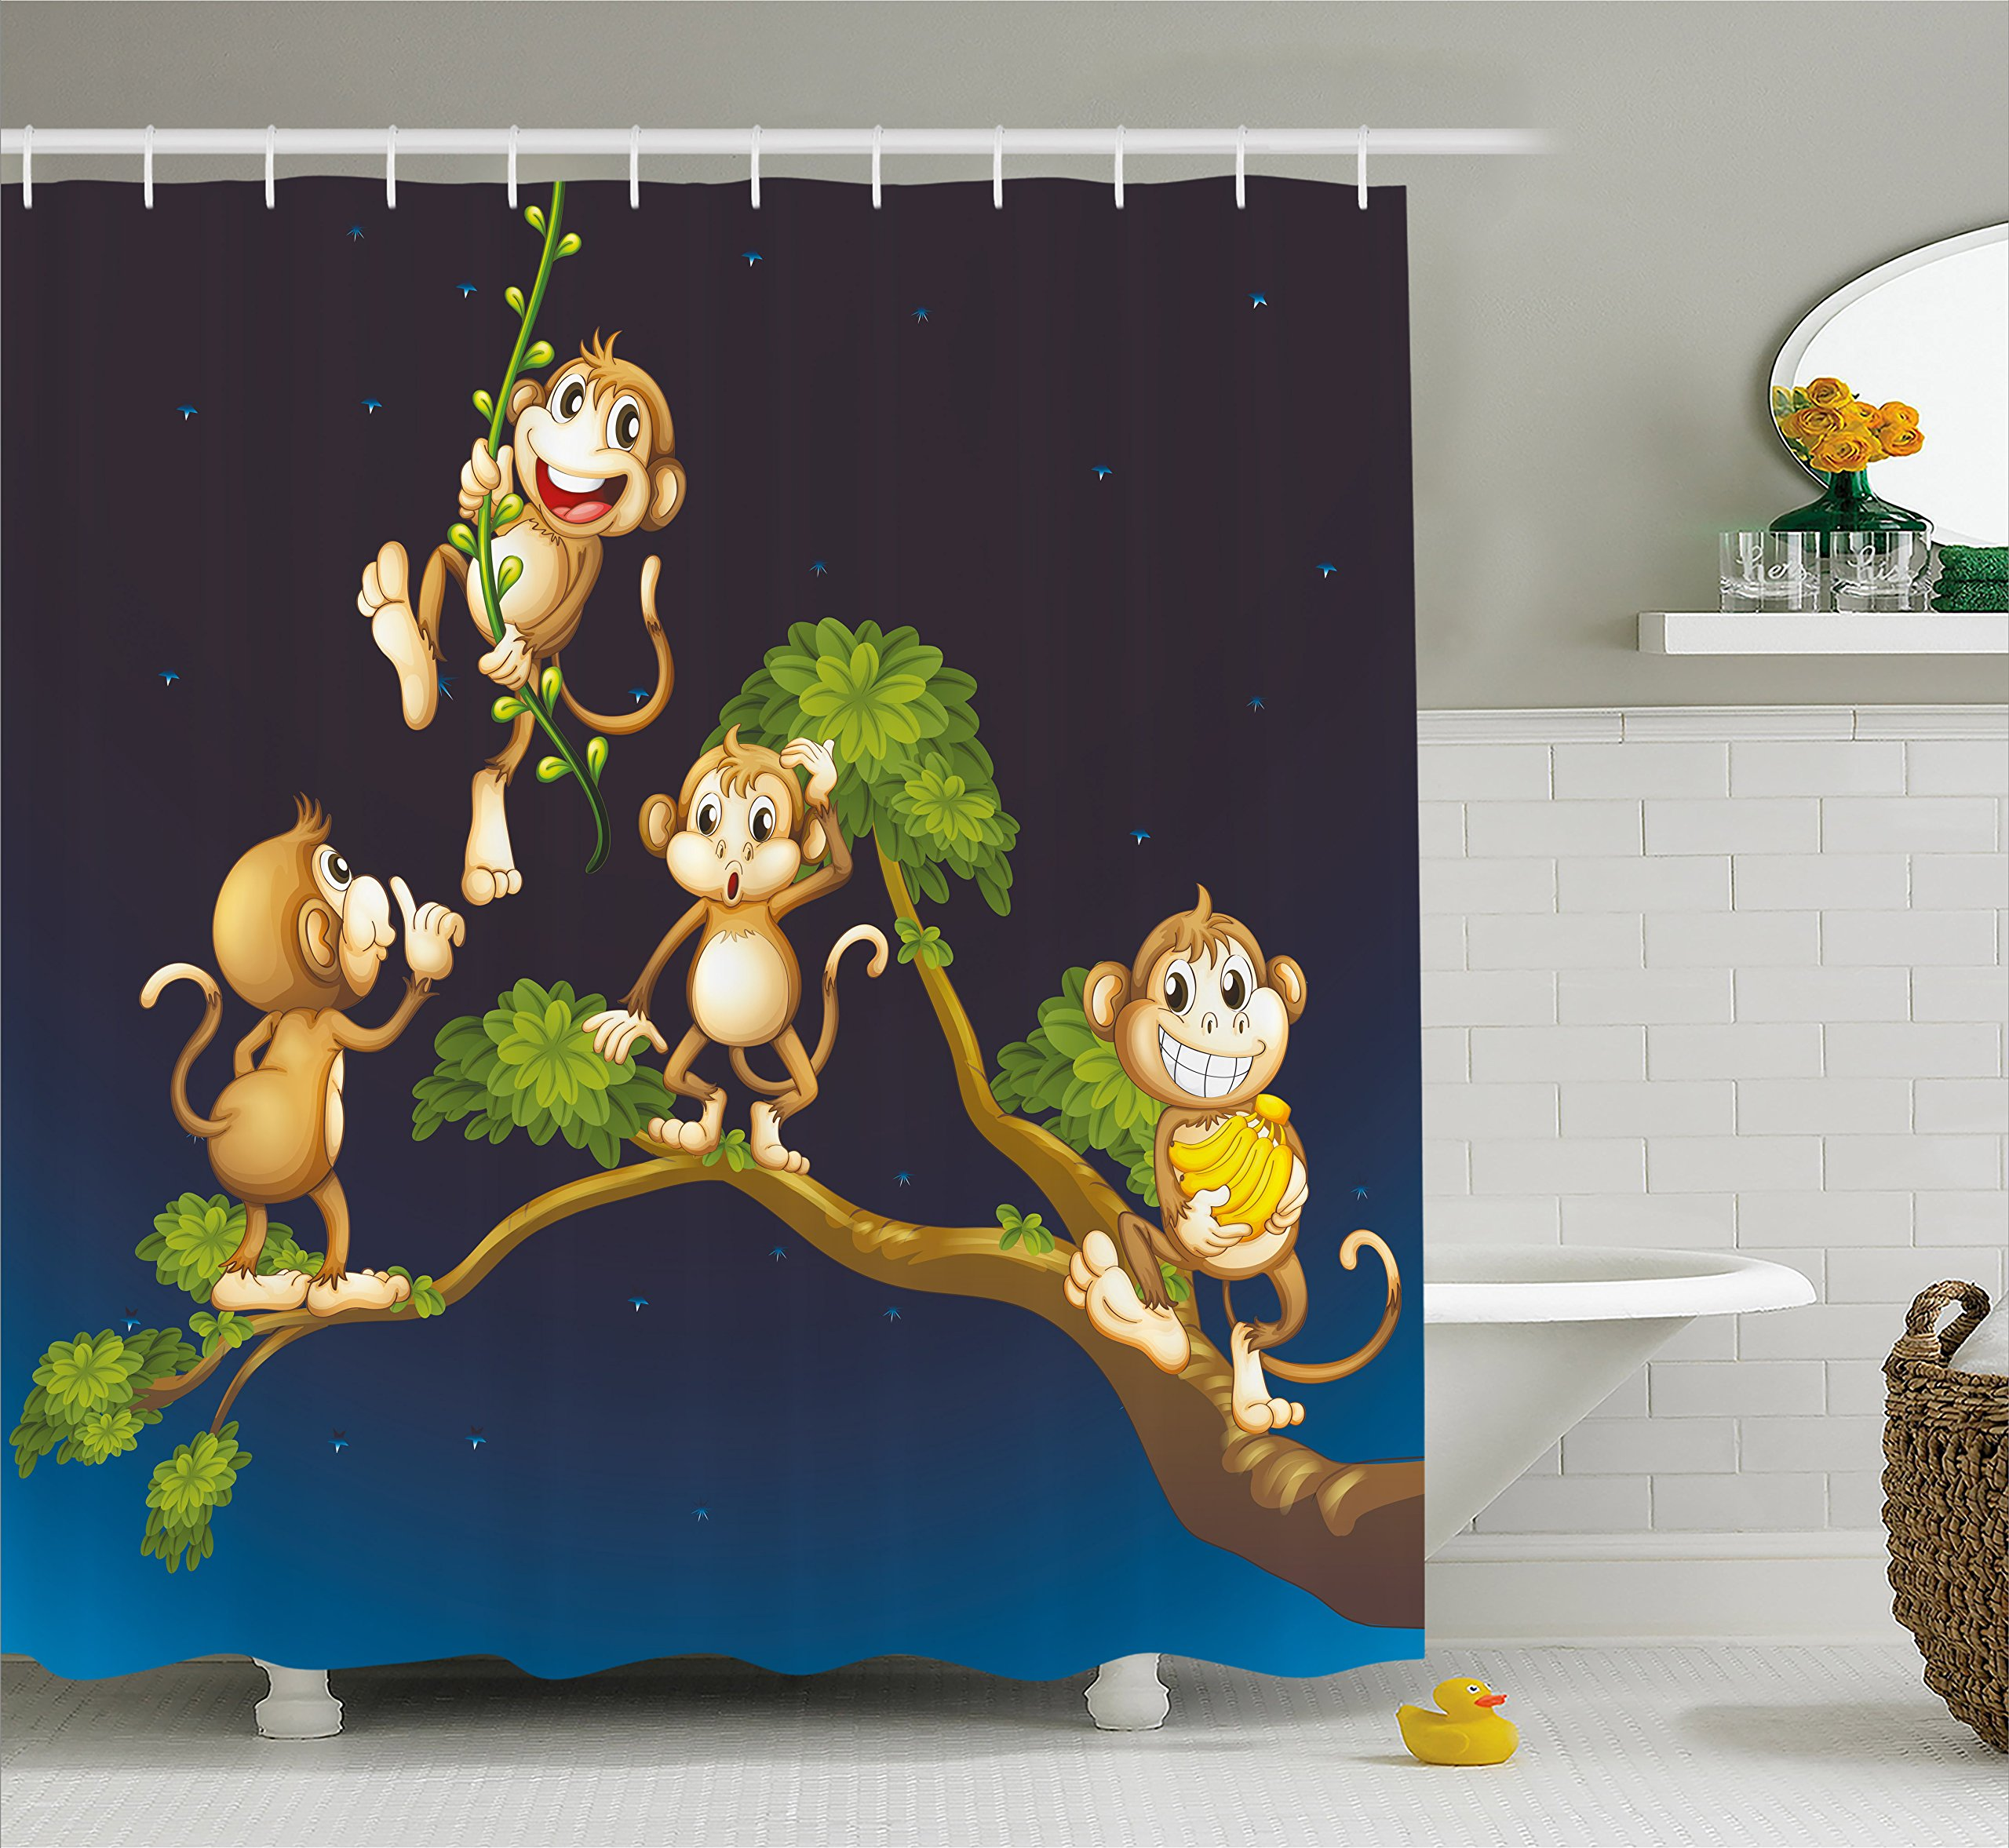 Ambesonne Nature Shower Curtain by, Animal Theme Illustration of Four Cute Monkeys on the Tree Branch Art, Fabric Bathroom Decor Set with Hooks, 75 Inches Long, Caramel and Dark Blue